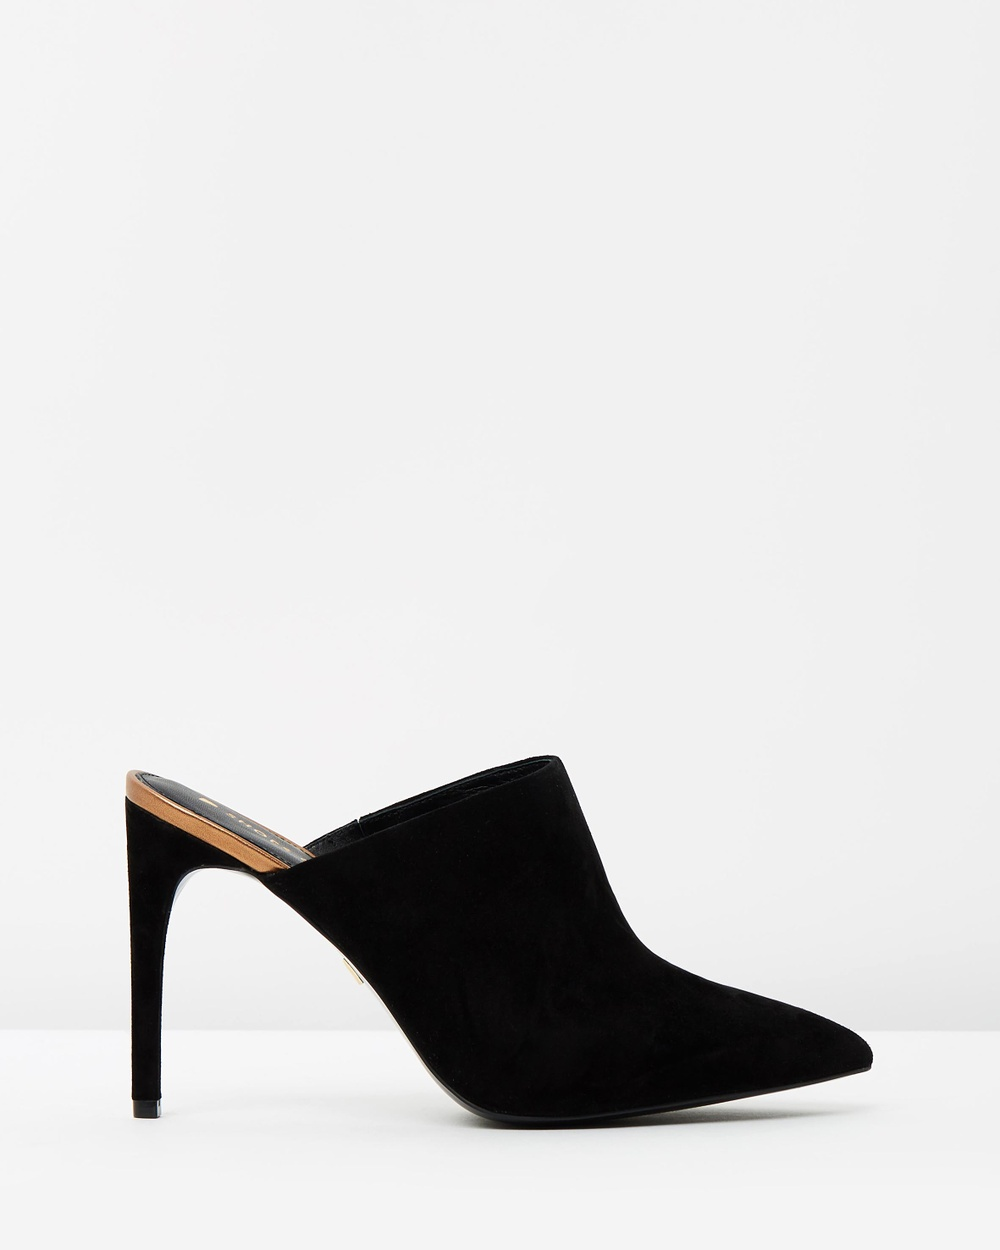 Shoes of Prey ICONIC EXCLUSIVE Alesia Leather Mules Heels Black Suede ICONIC EXCLUSIVE Alesia Leather Mules